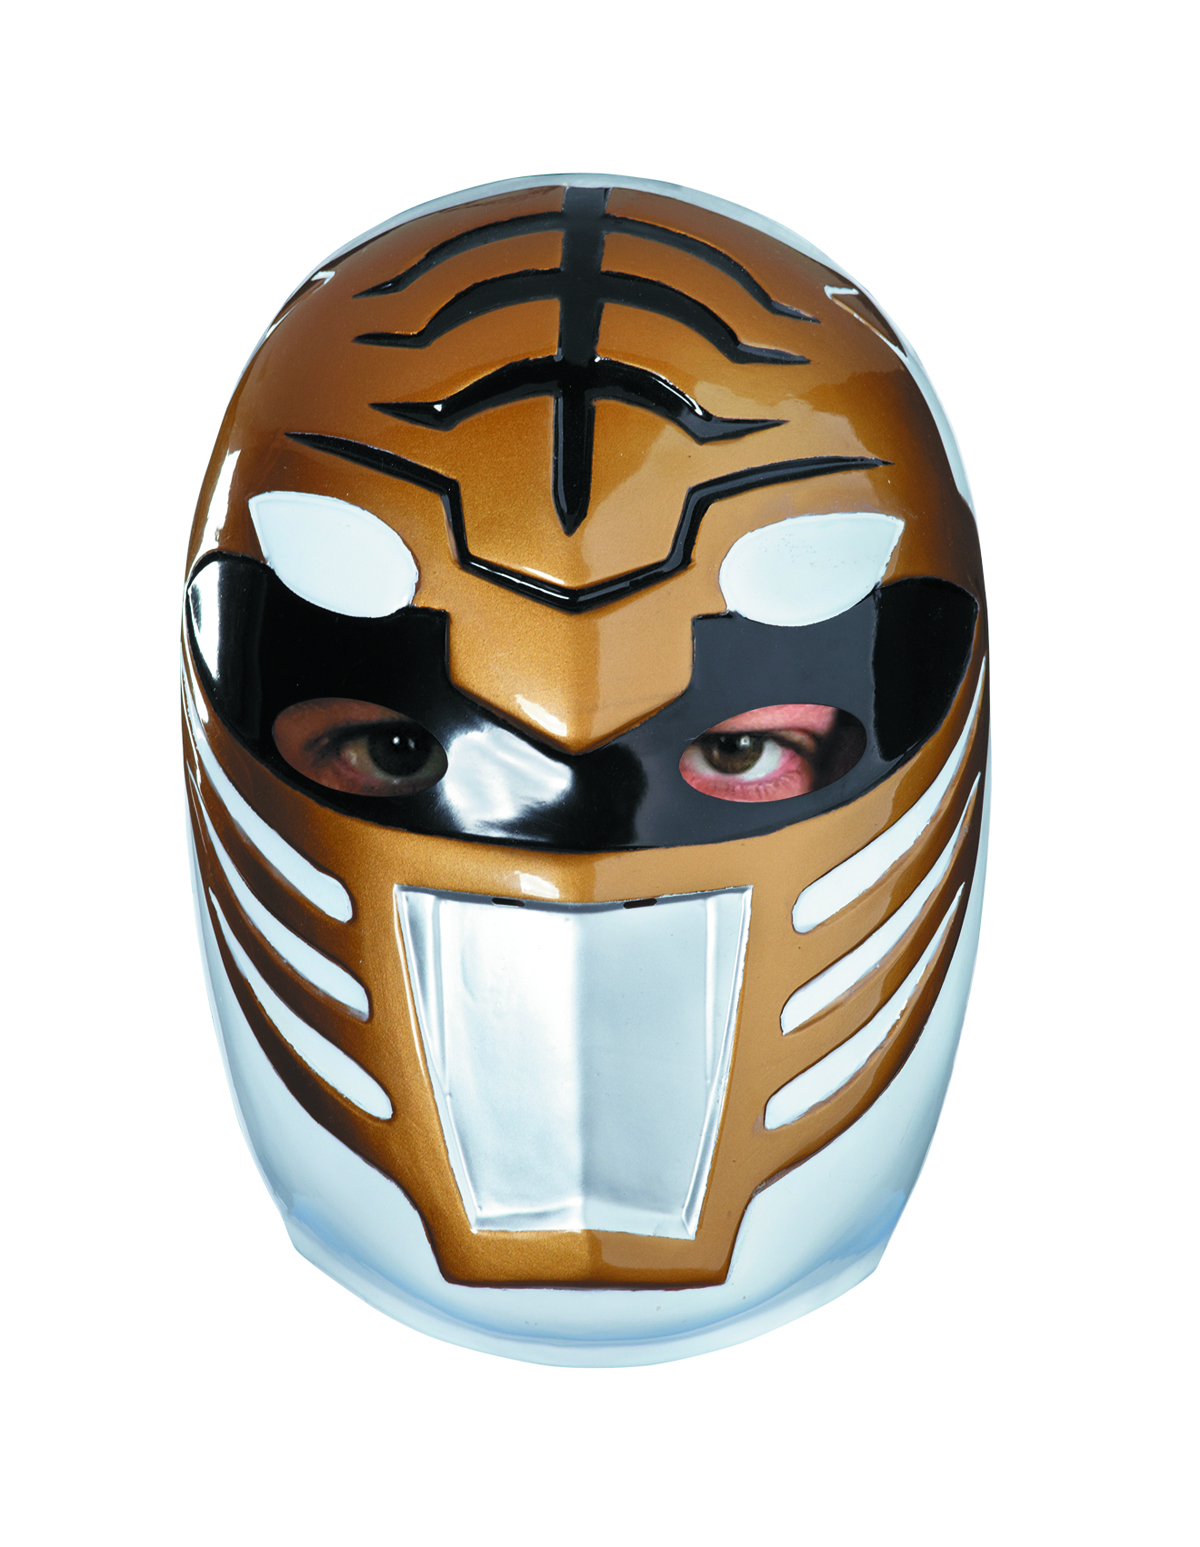 MMPR WHITE RANGER VACUFORM MASK